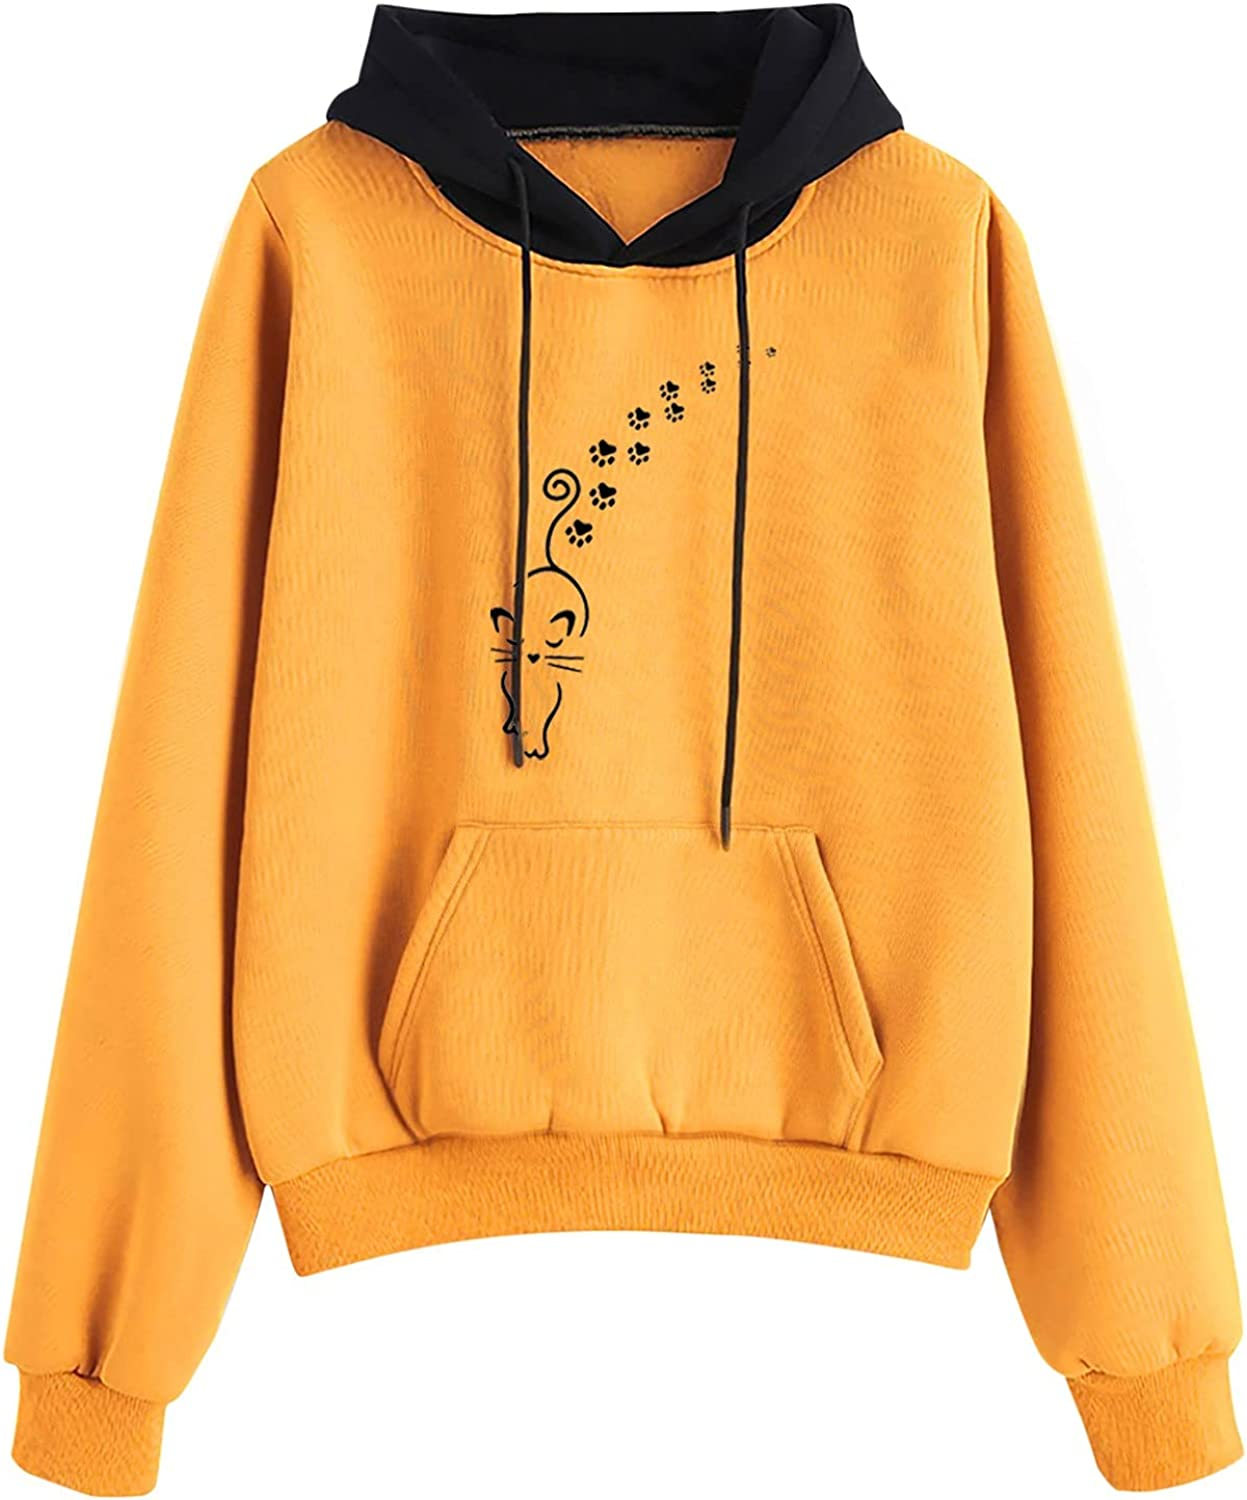 HIRIRI Loose Sweatshirts for Women Omaha Mall Bloc Challenge the lowest price of Japan ☆ Long Sleeve Casual Color